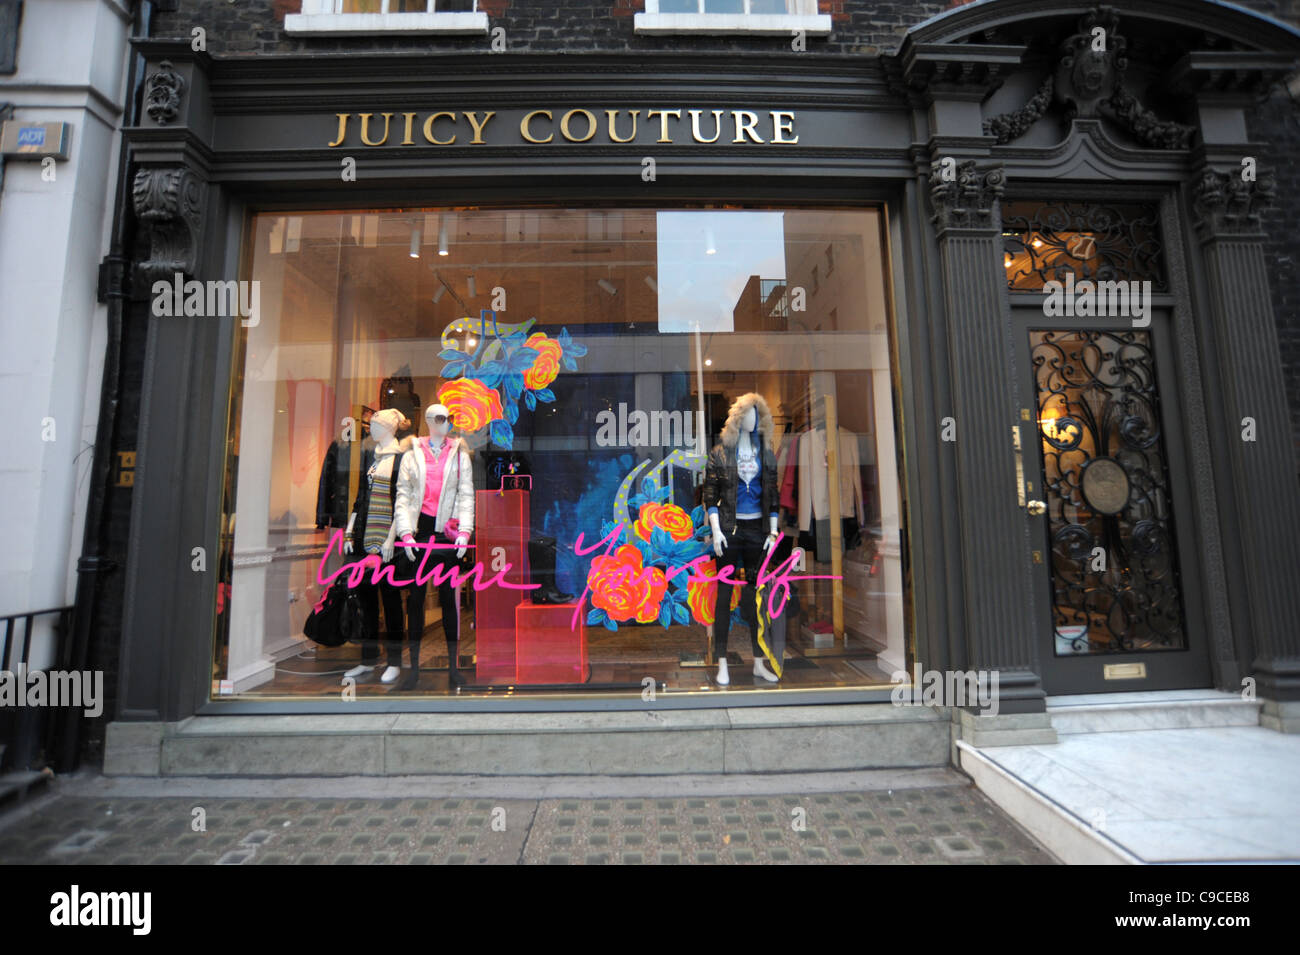 Exterior shot of the Juicy Couture store on Brutton Street London England 2011 - Image Copyright Ben Pruchnie 2011 - Stock Image